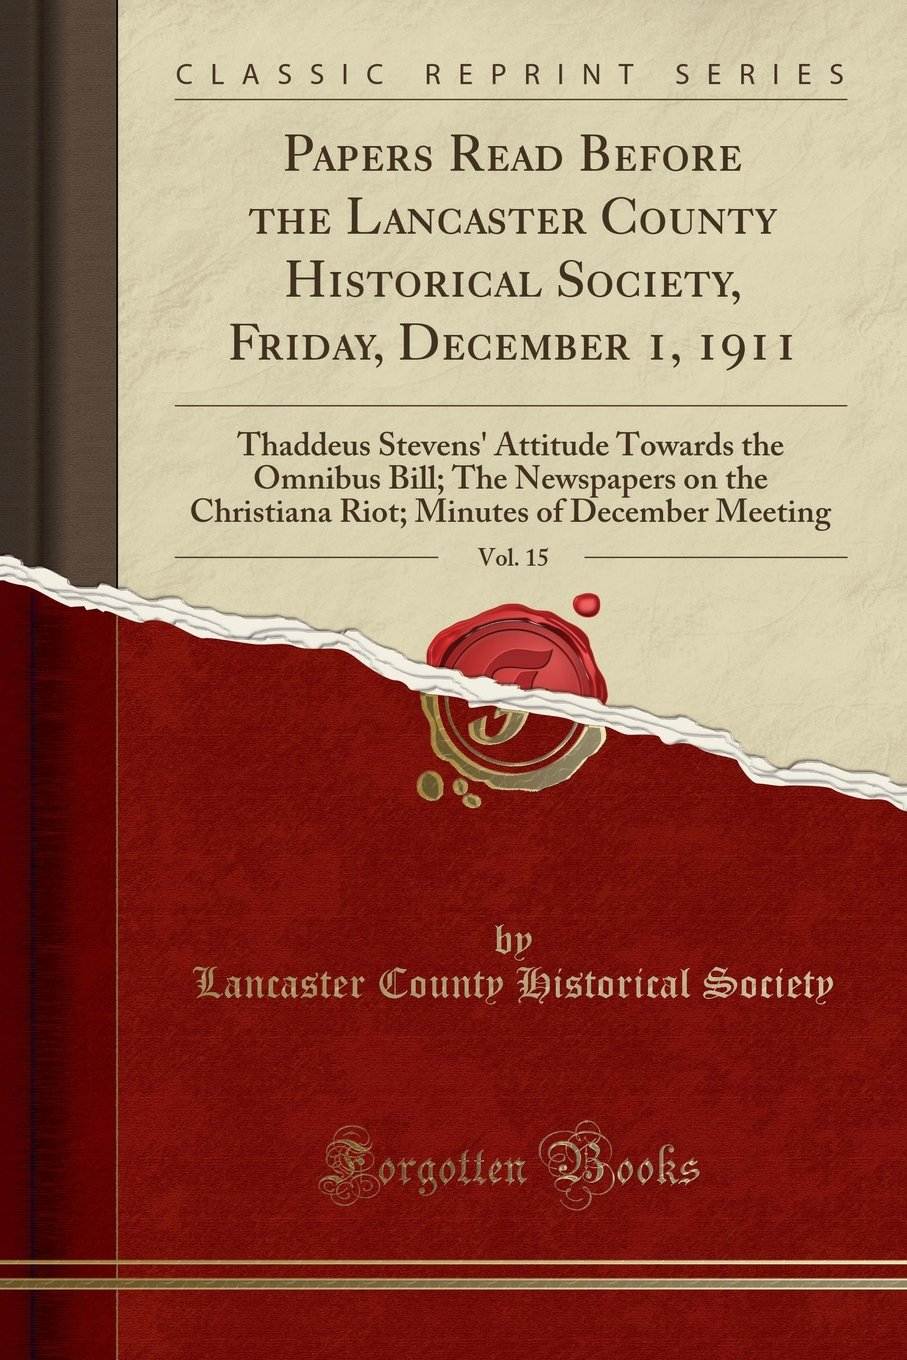 Papers Read Before the Lancaster County Historical Society, Friday, December 1, 1911, Vol. 15: Thaddeus Stevens' Attitude Towards the Omnibus Bill; ... Minutes of December Meeting (Classic Reprint) pdf epub